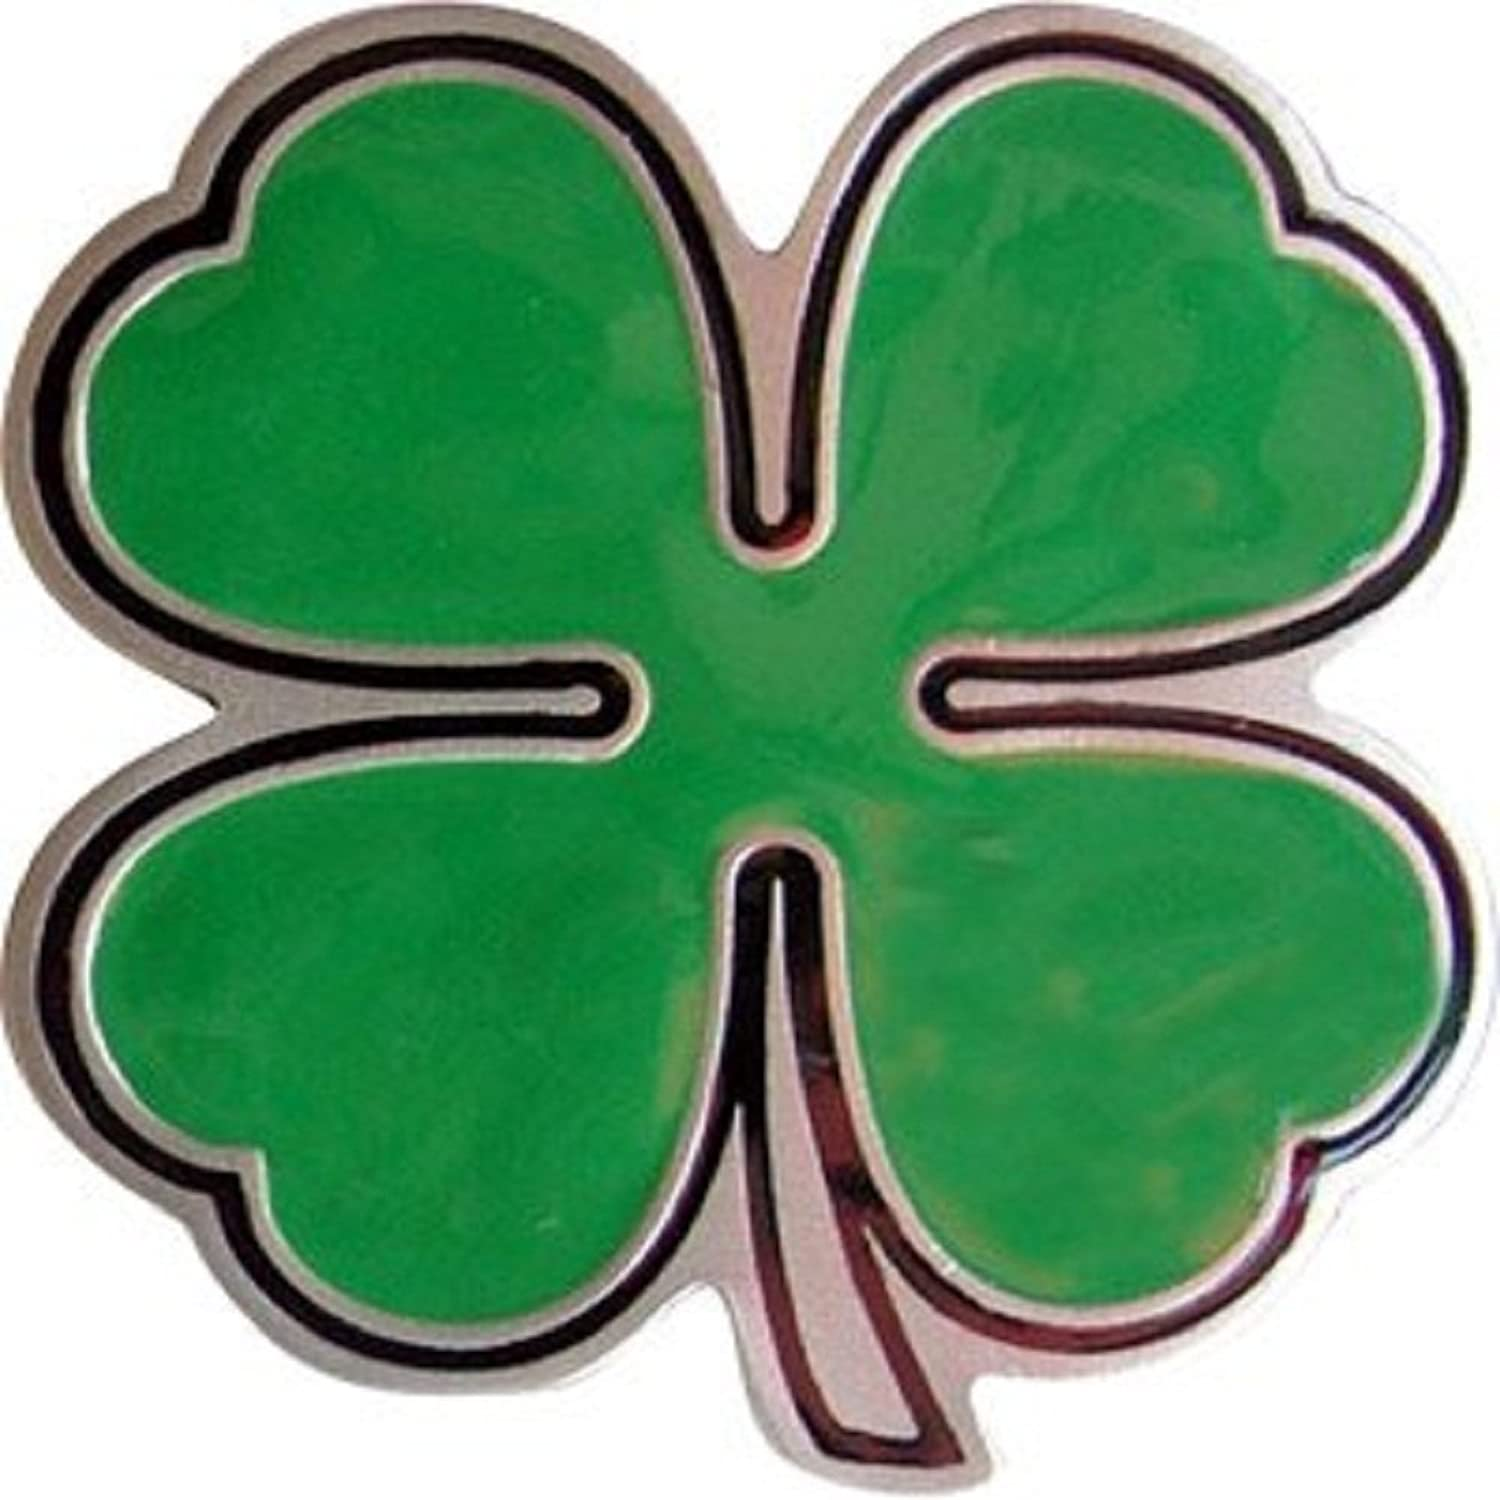 4 Leaf Clover Belt Buckle